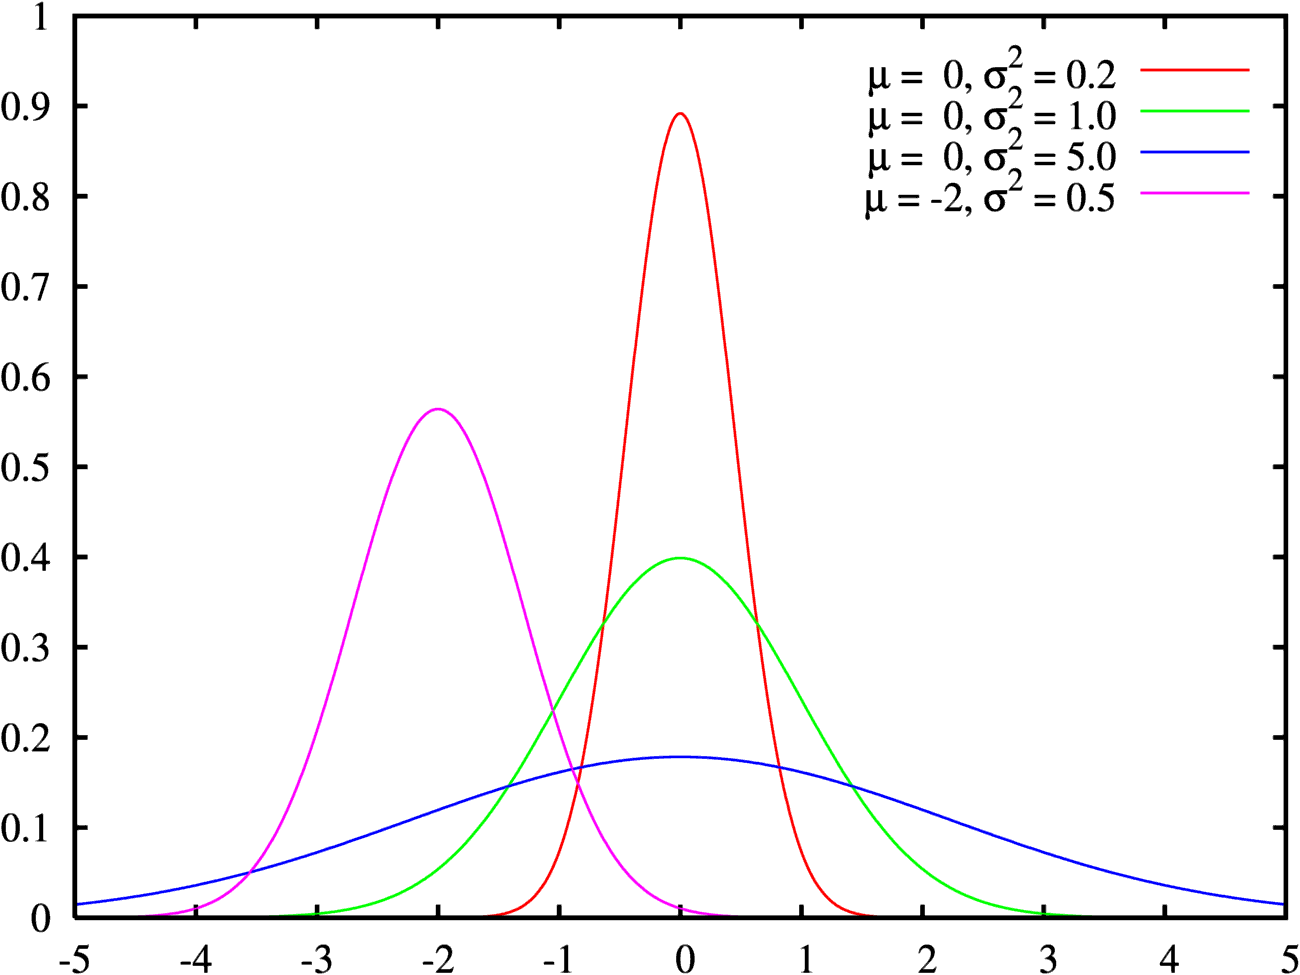 Normal_distribution_pdf.png